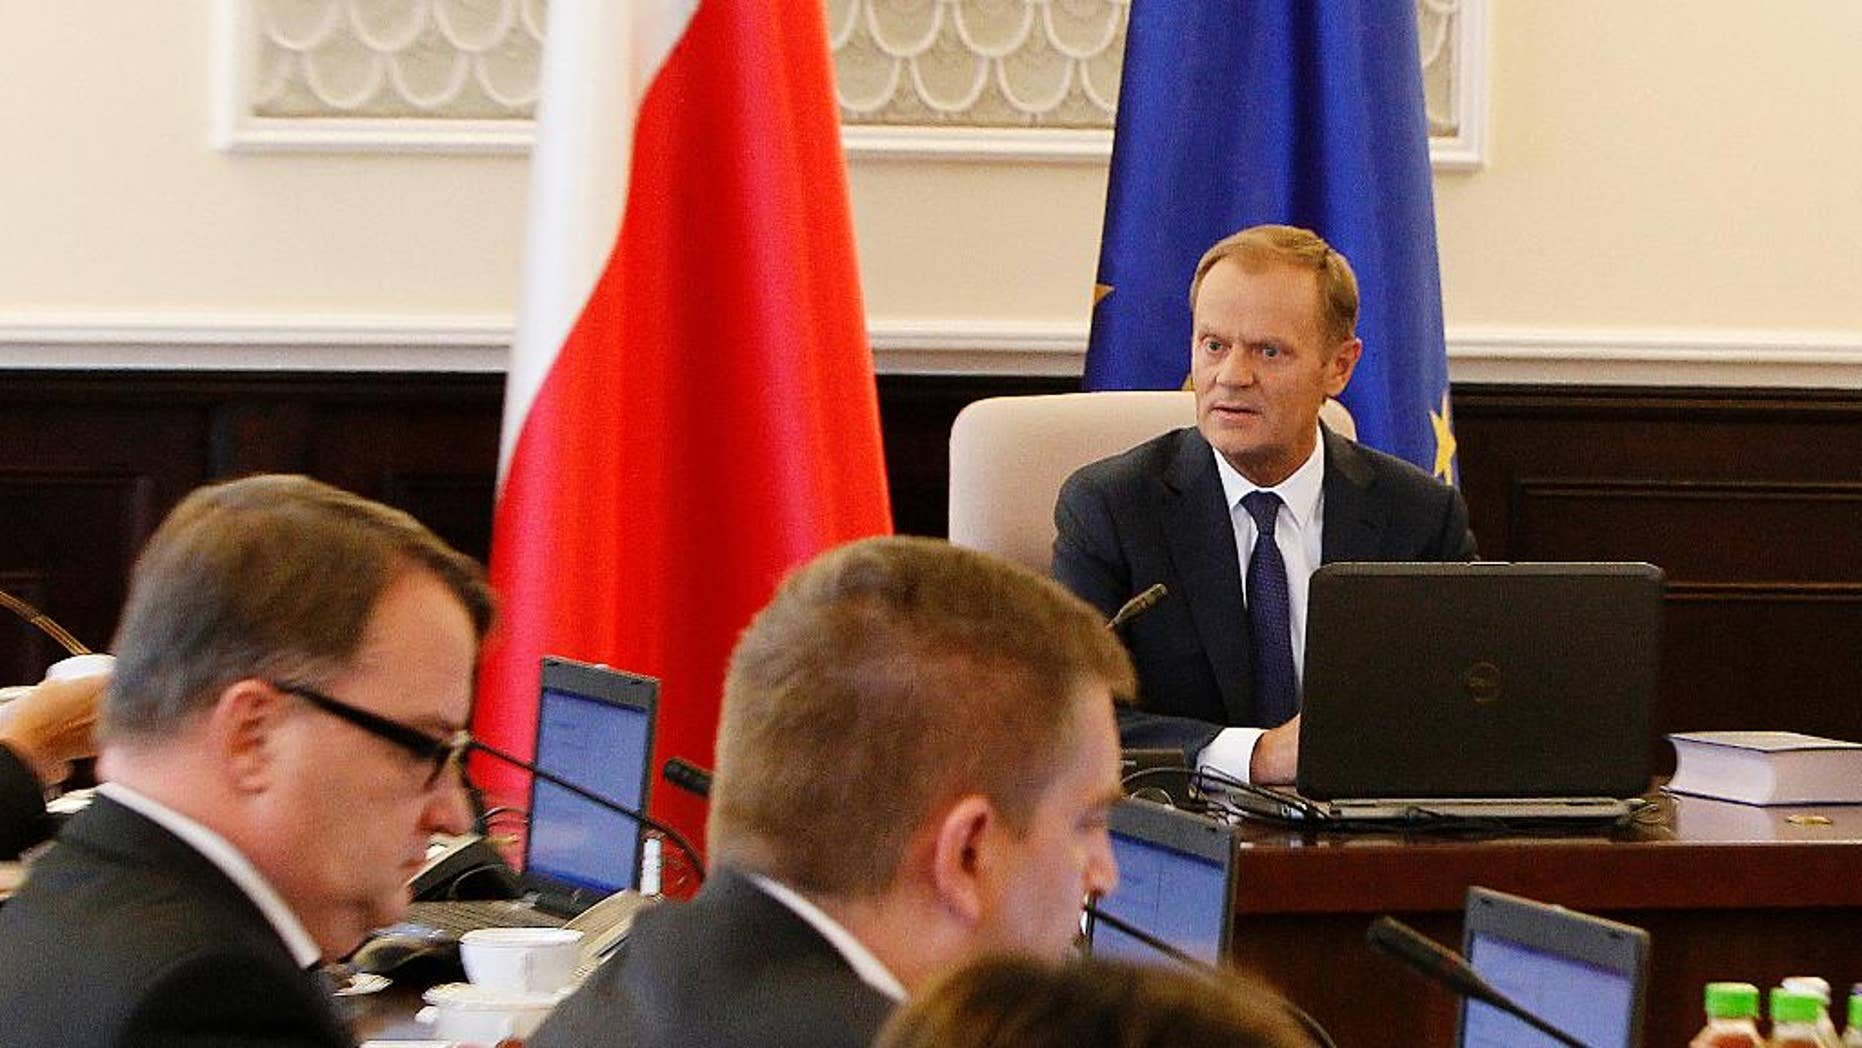 Poland's Prime Minister Donald Tusk, right, attends his last meeting of the Council of Ministers in Warsaw, Poland, Tuesday, Sept. 9, 2014. The government is resigning because Tusk was recently chosen to be the next head of the European Commission. (AP Photo/Czarek Sokolowski)